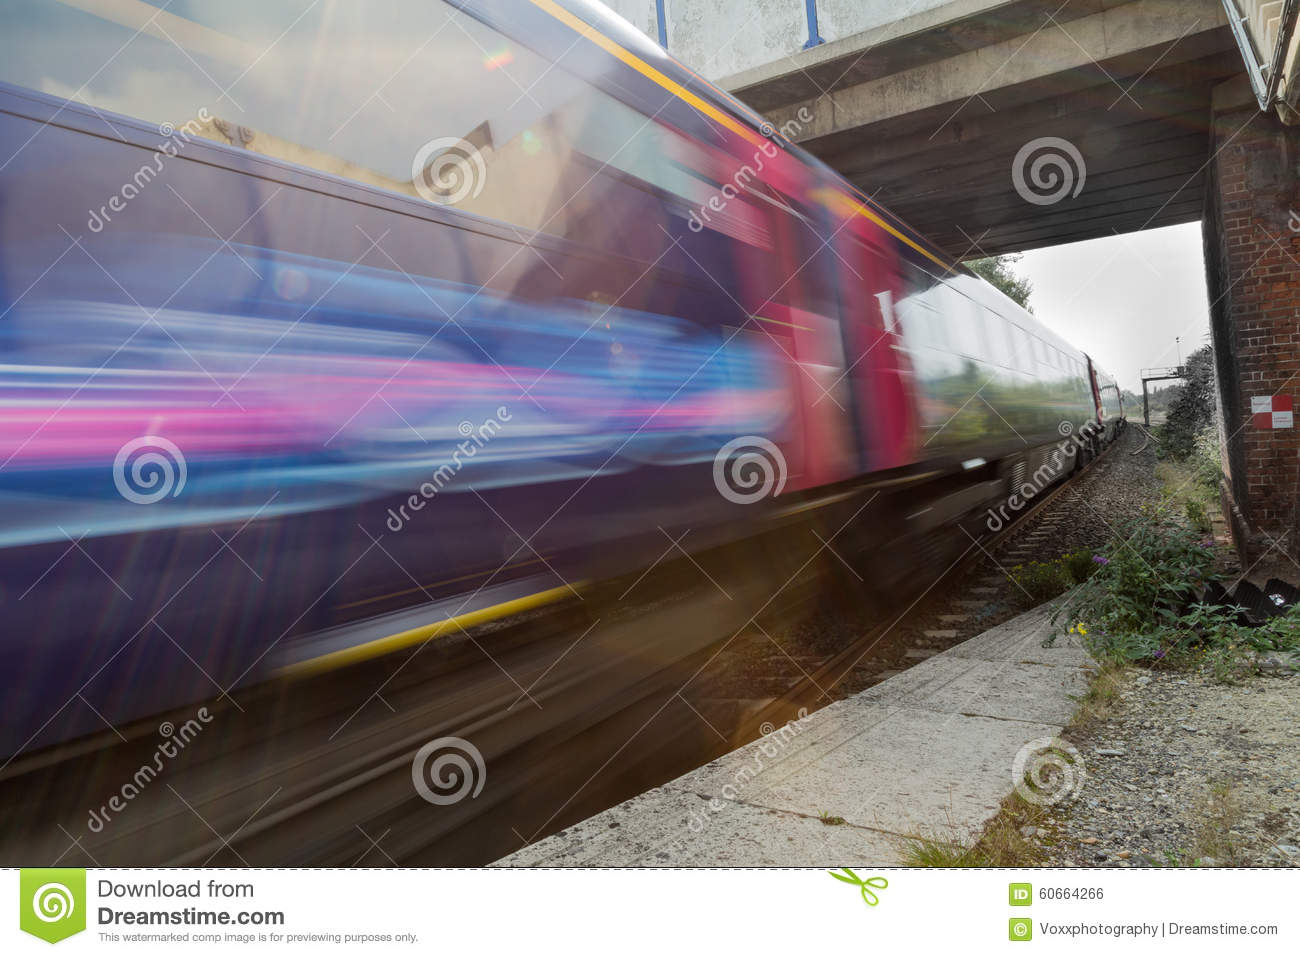 Car Insurance If You Commute By Train